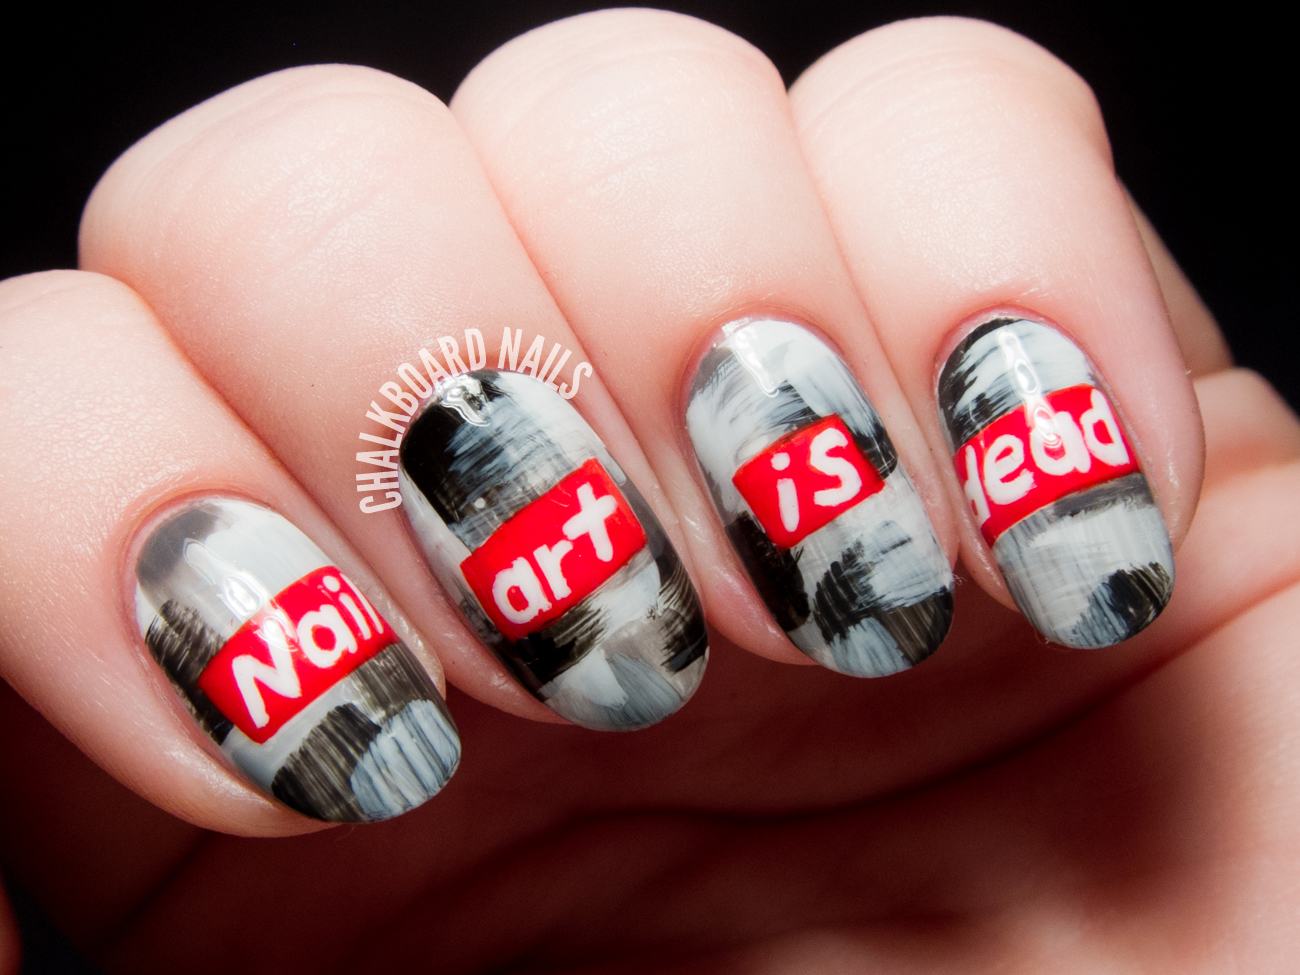 Nail art is dead barbara kruger inspired nail art chalkboard barbara kruger inspired nail art by chalkboardnails prinsesfo Gallery